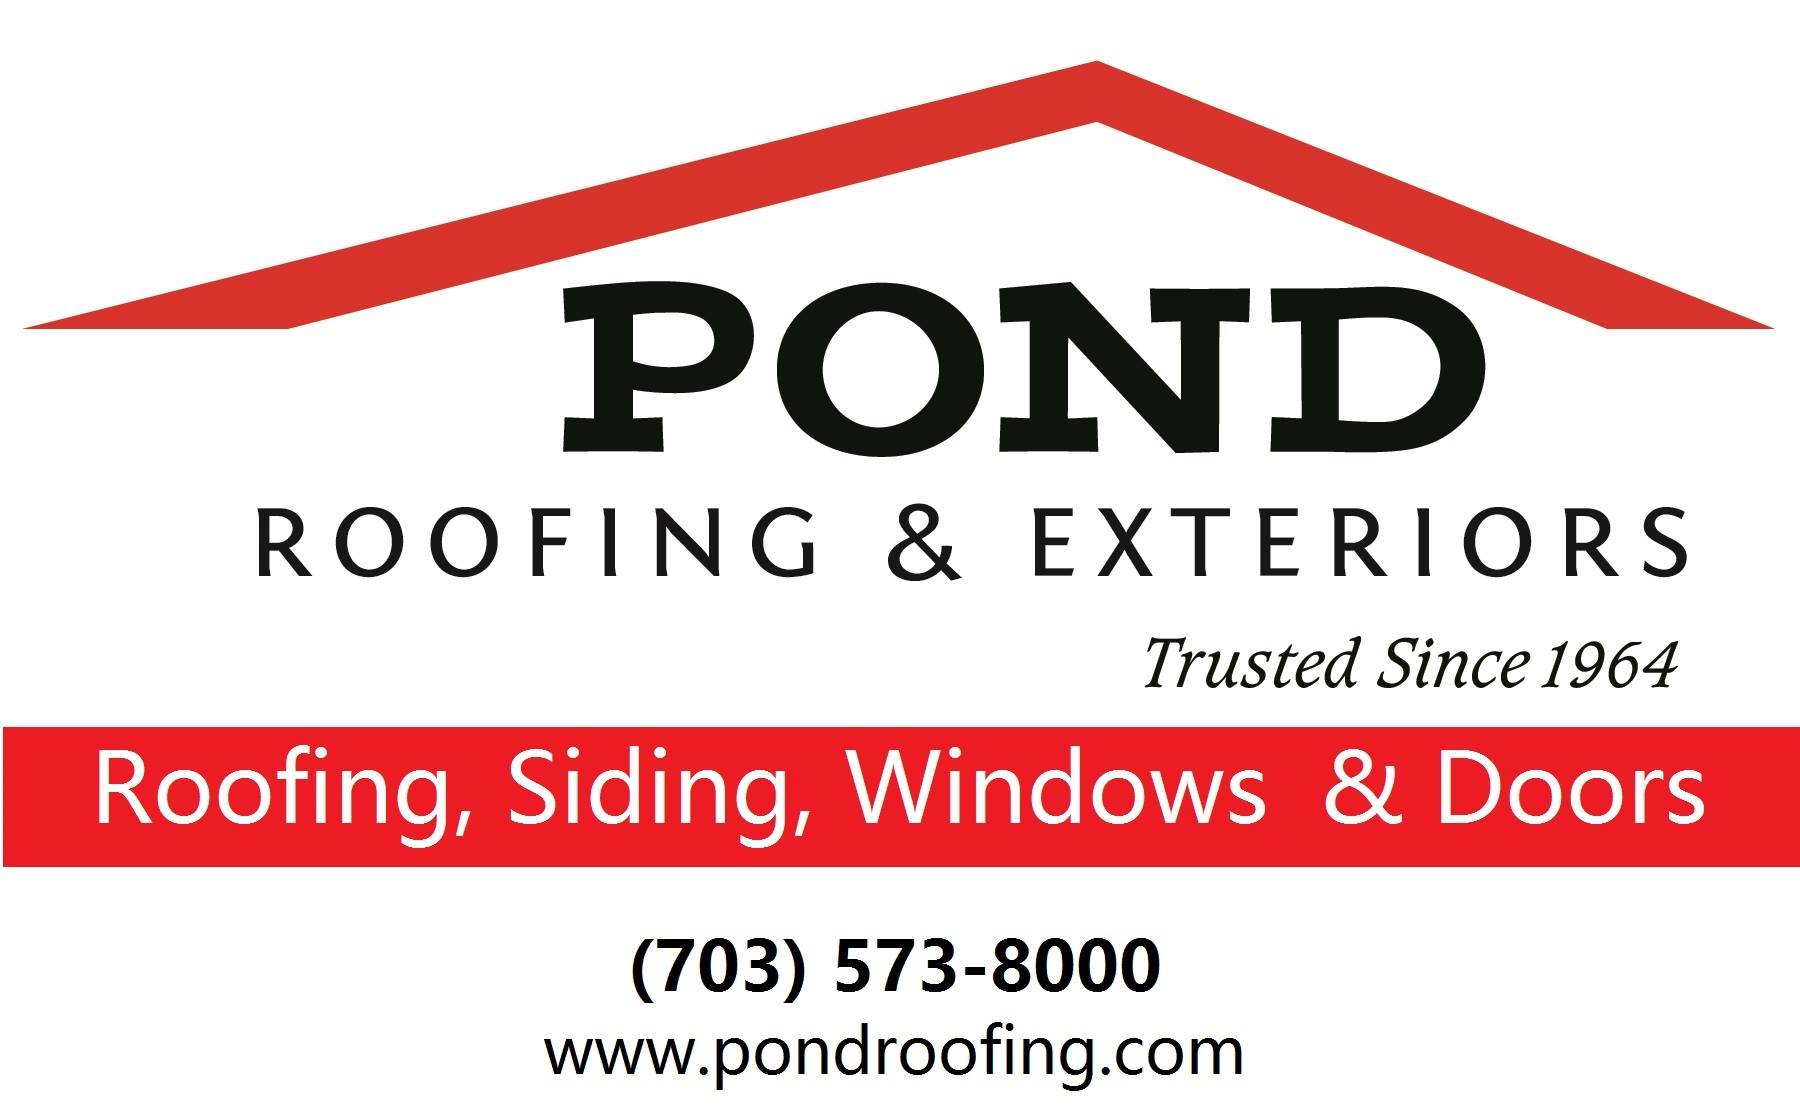 Pond Roofing U0026 Exteriors Is A Fairfax Based Roofing Company That Has Been  In Operation For 50 Years. The Washington Magazine Named The Company As One  Of The ...